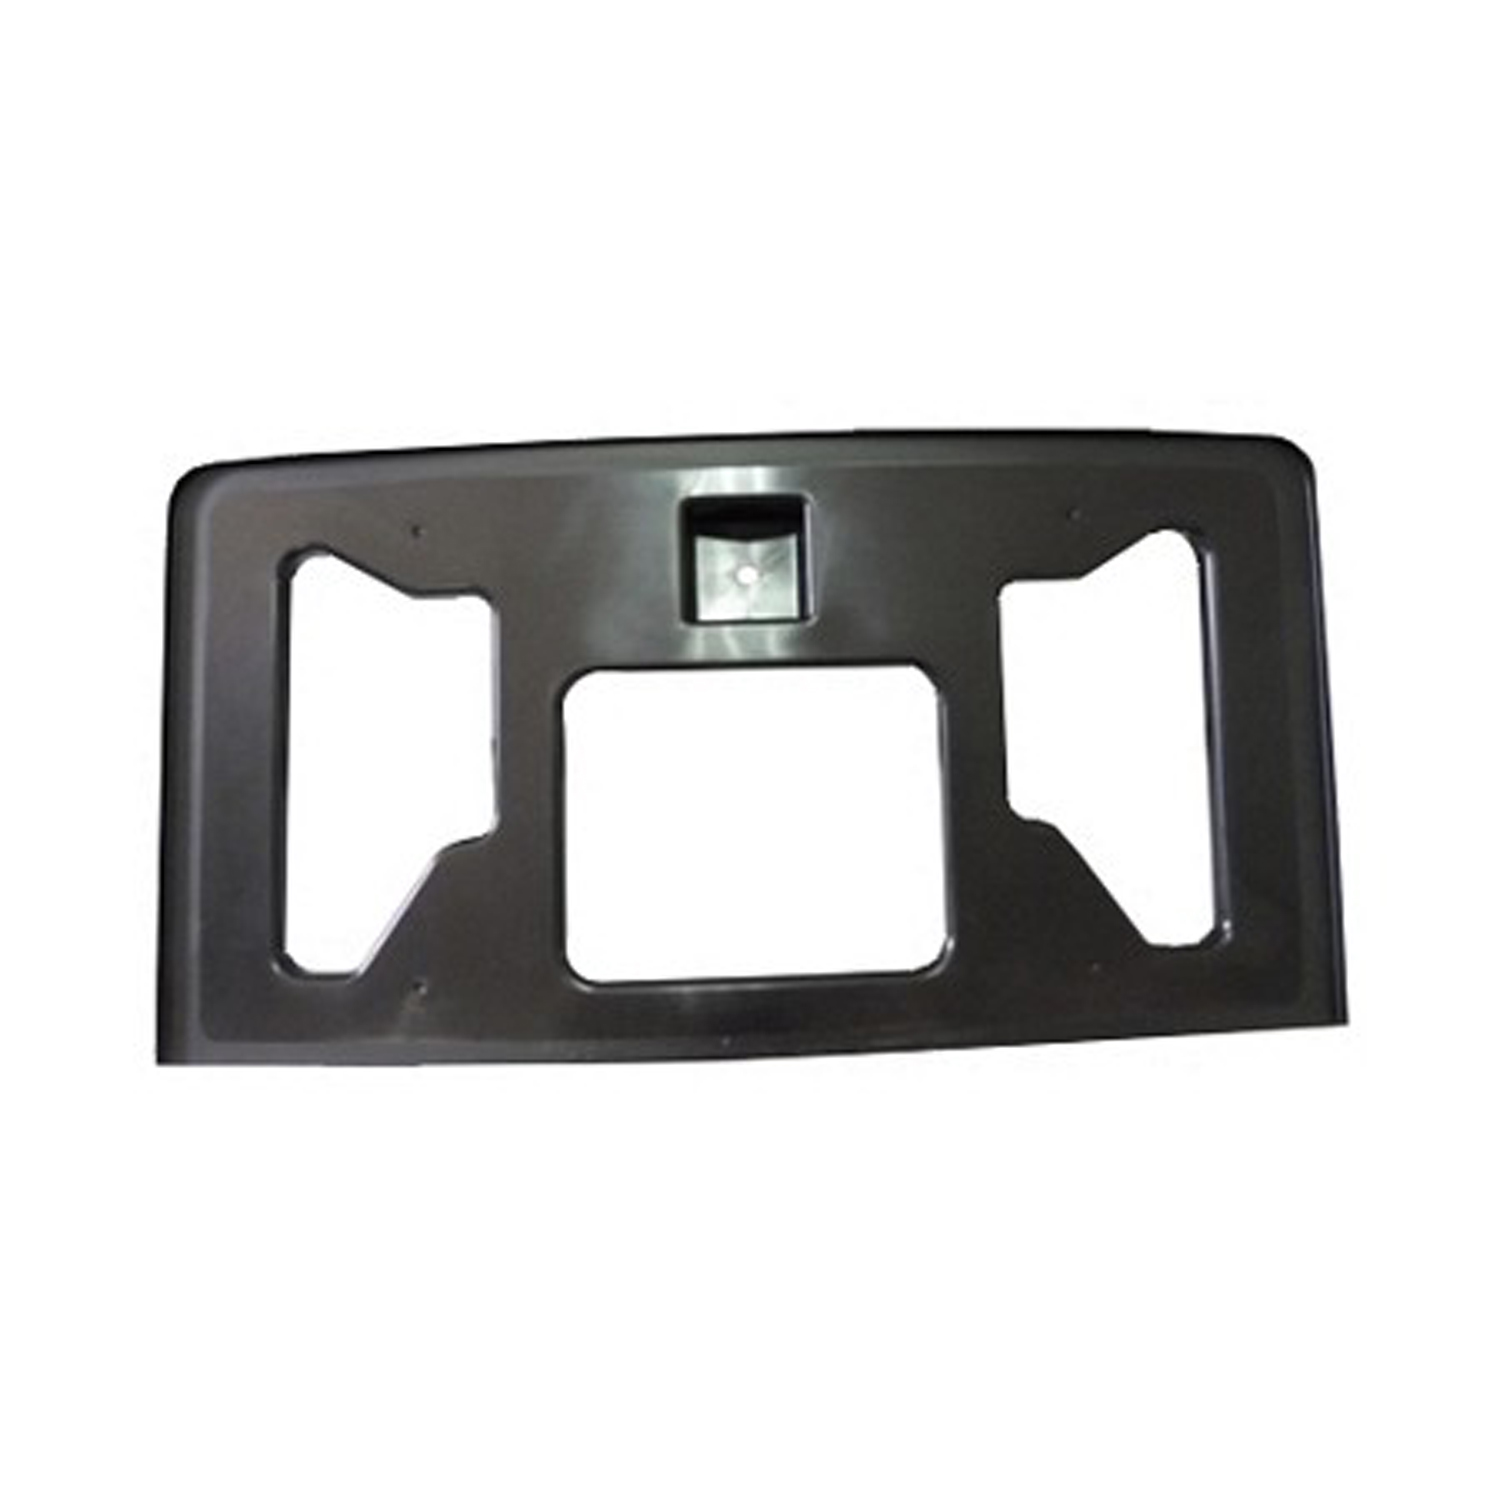 AC1068102 Front License Plate Bracket For 2013-2015 Acura